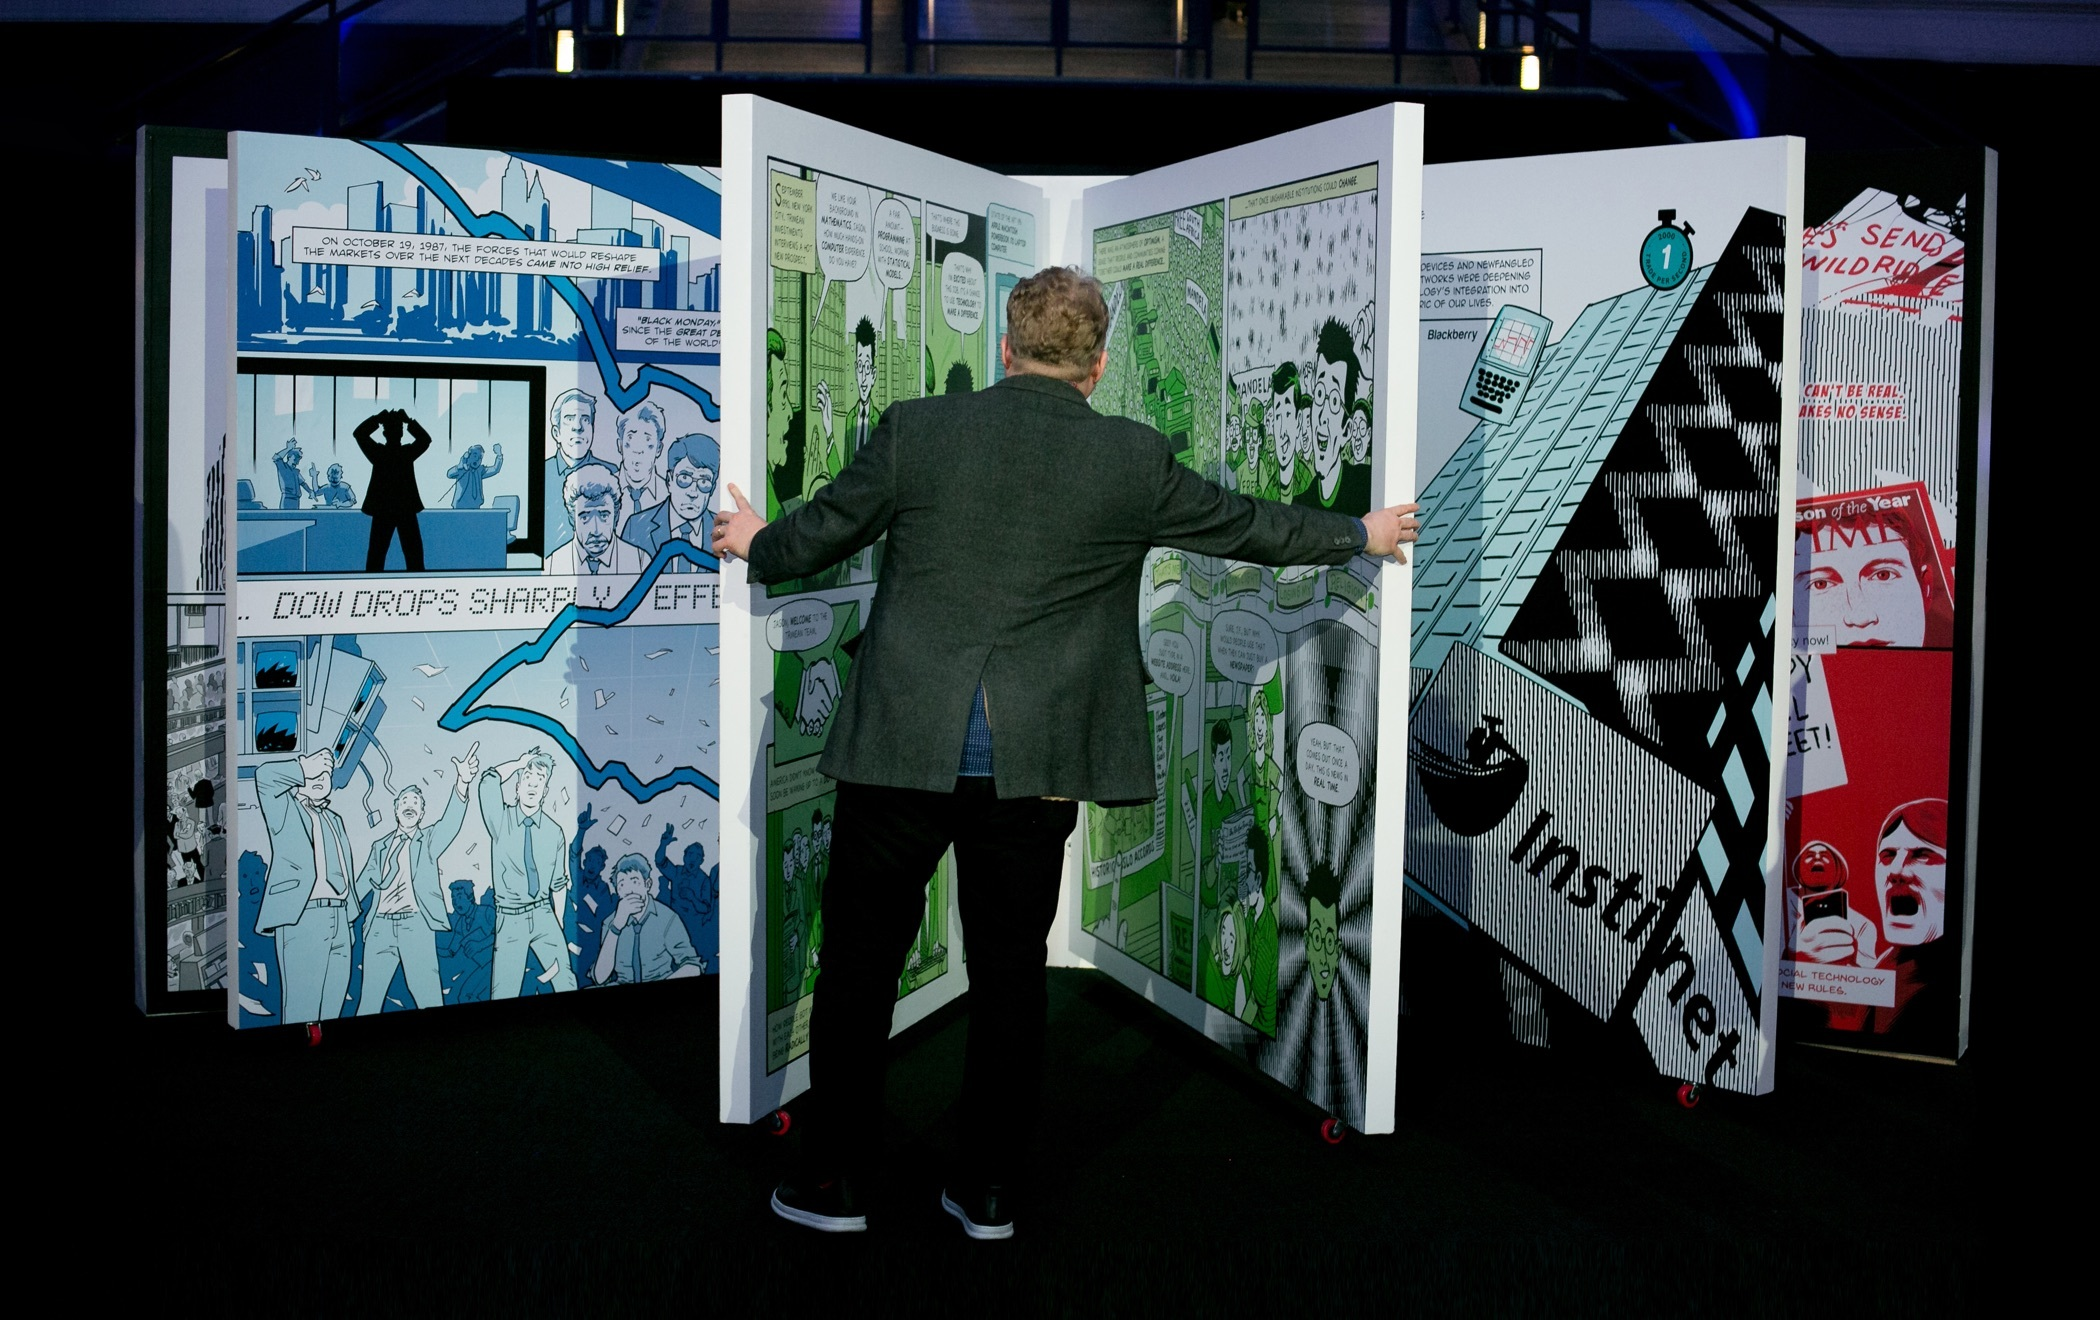 A rear view of a person opening the pages of a 7 foot tall version of Instinet's Fintech at Fifty graphic novel.